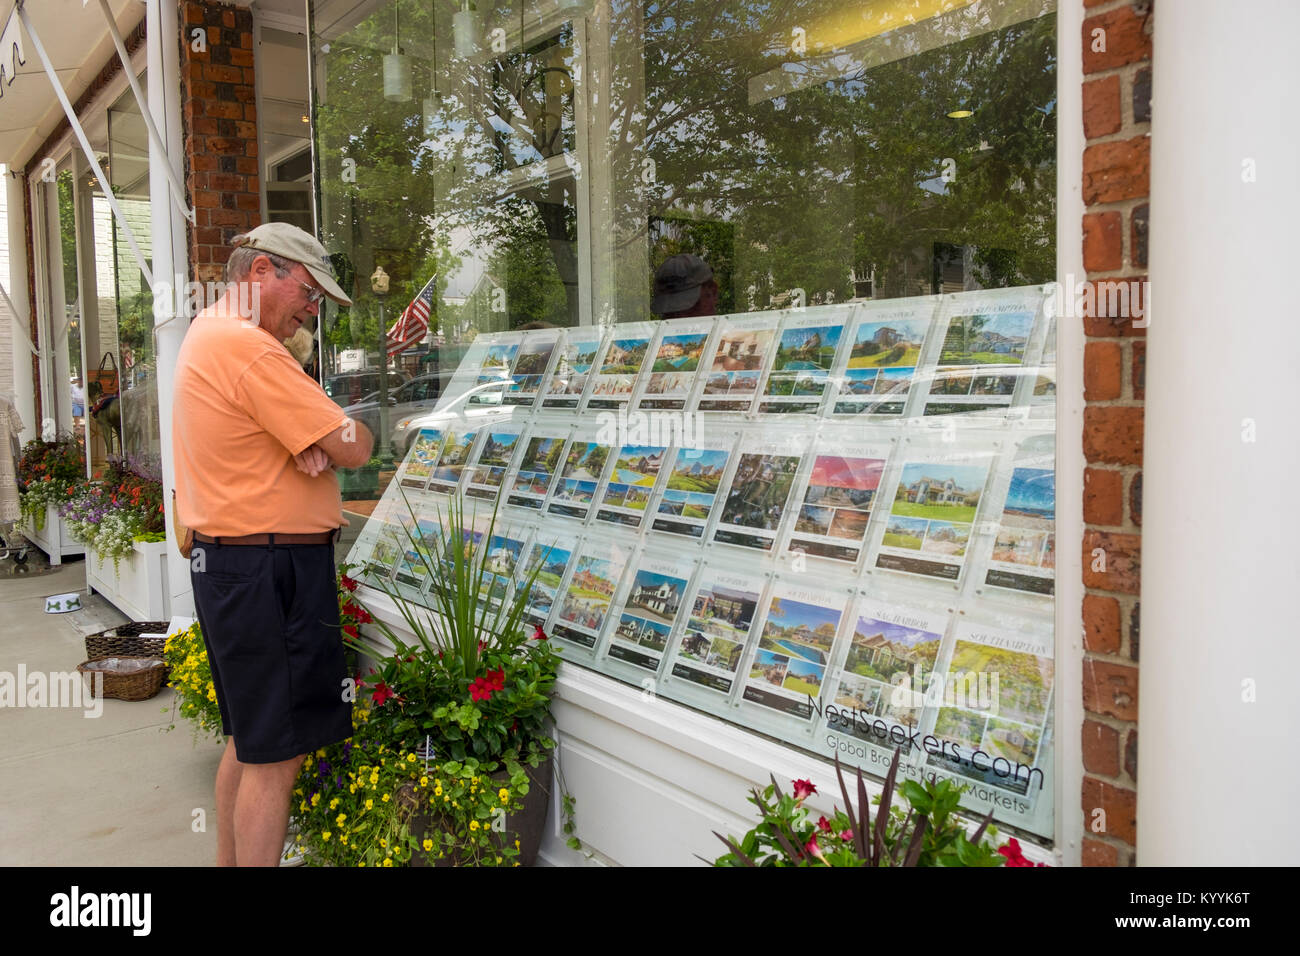 A realtors real estate agency window showing properties for sale, Southampton, The Hamptons, Long Island, New York, - Stock Image